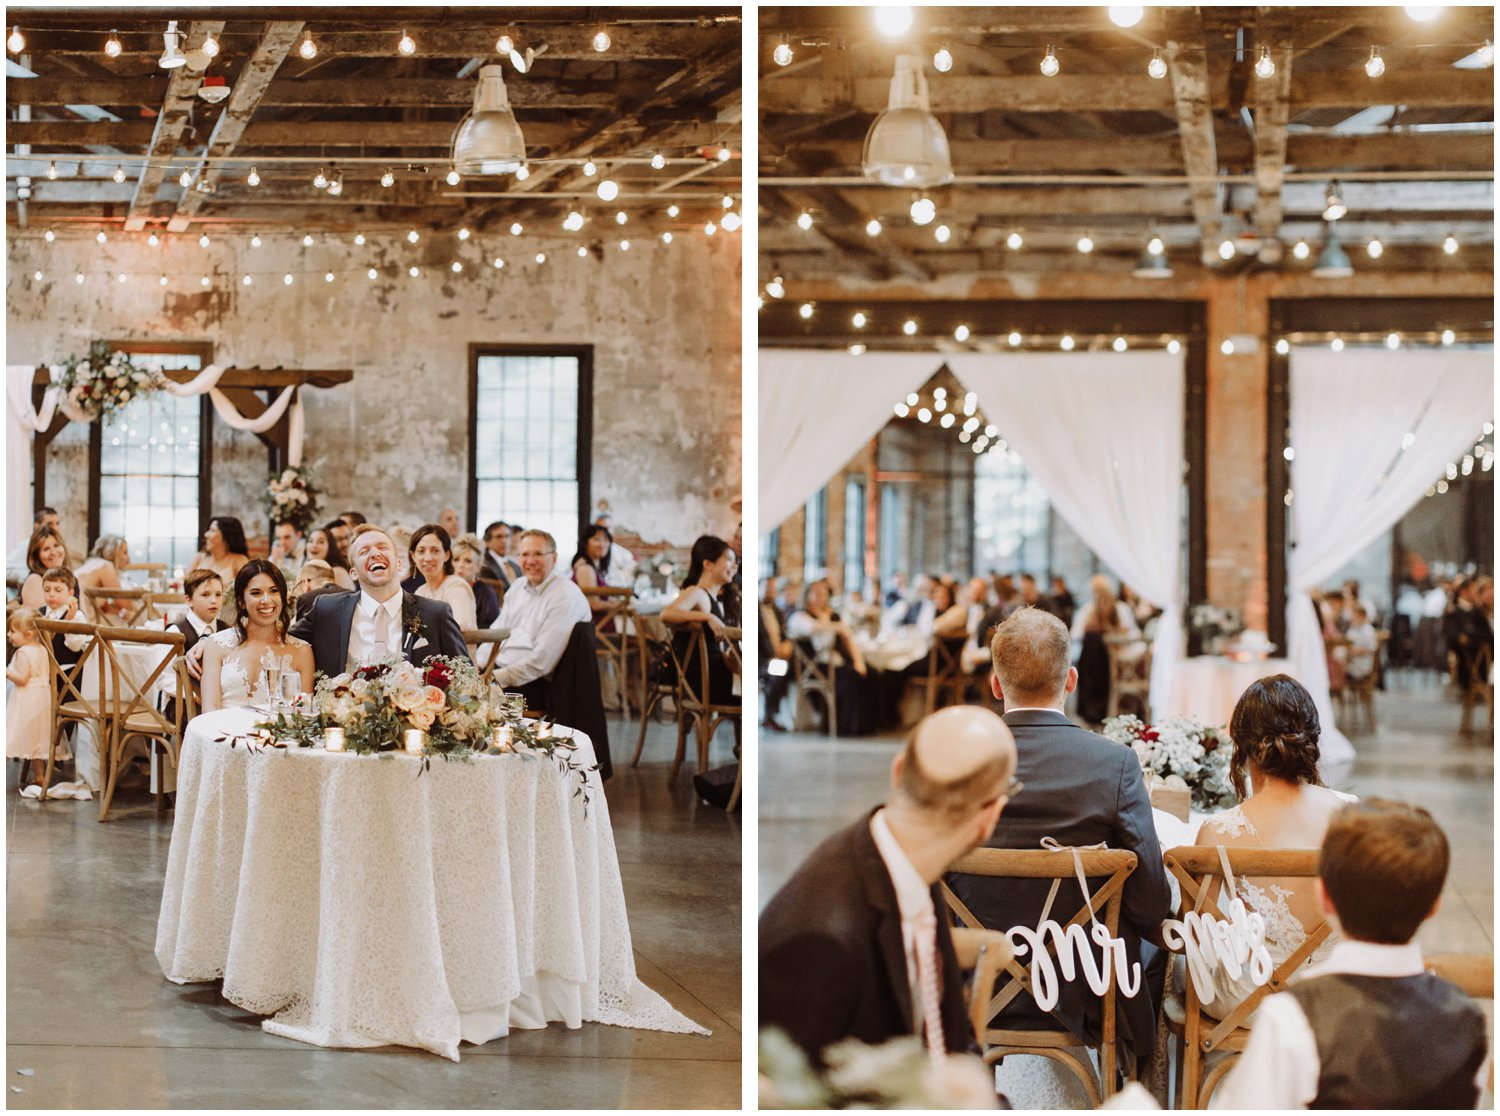 Baltimore wedding photographer | Mt Washington Mill Dye House wedding reception | Baltimore Maryland wedding